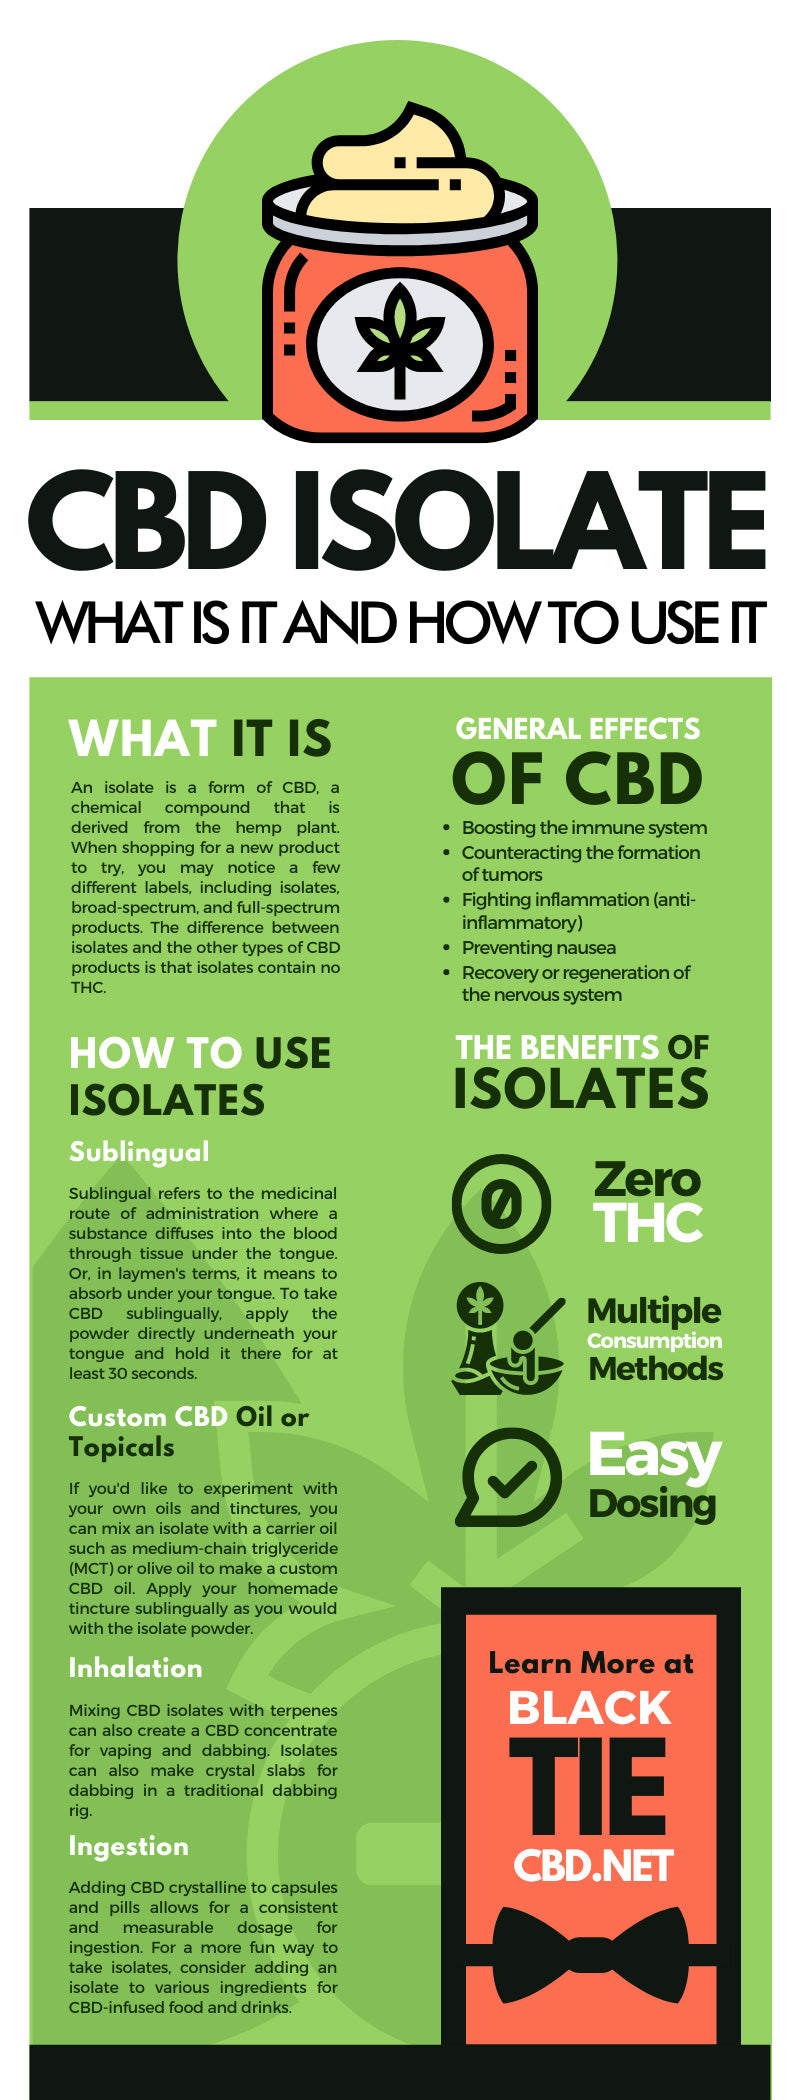 CBD Isolate: What Is It and How To Use It